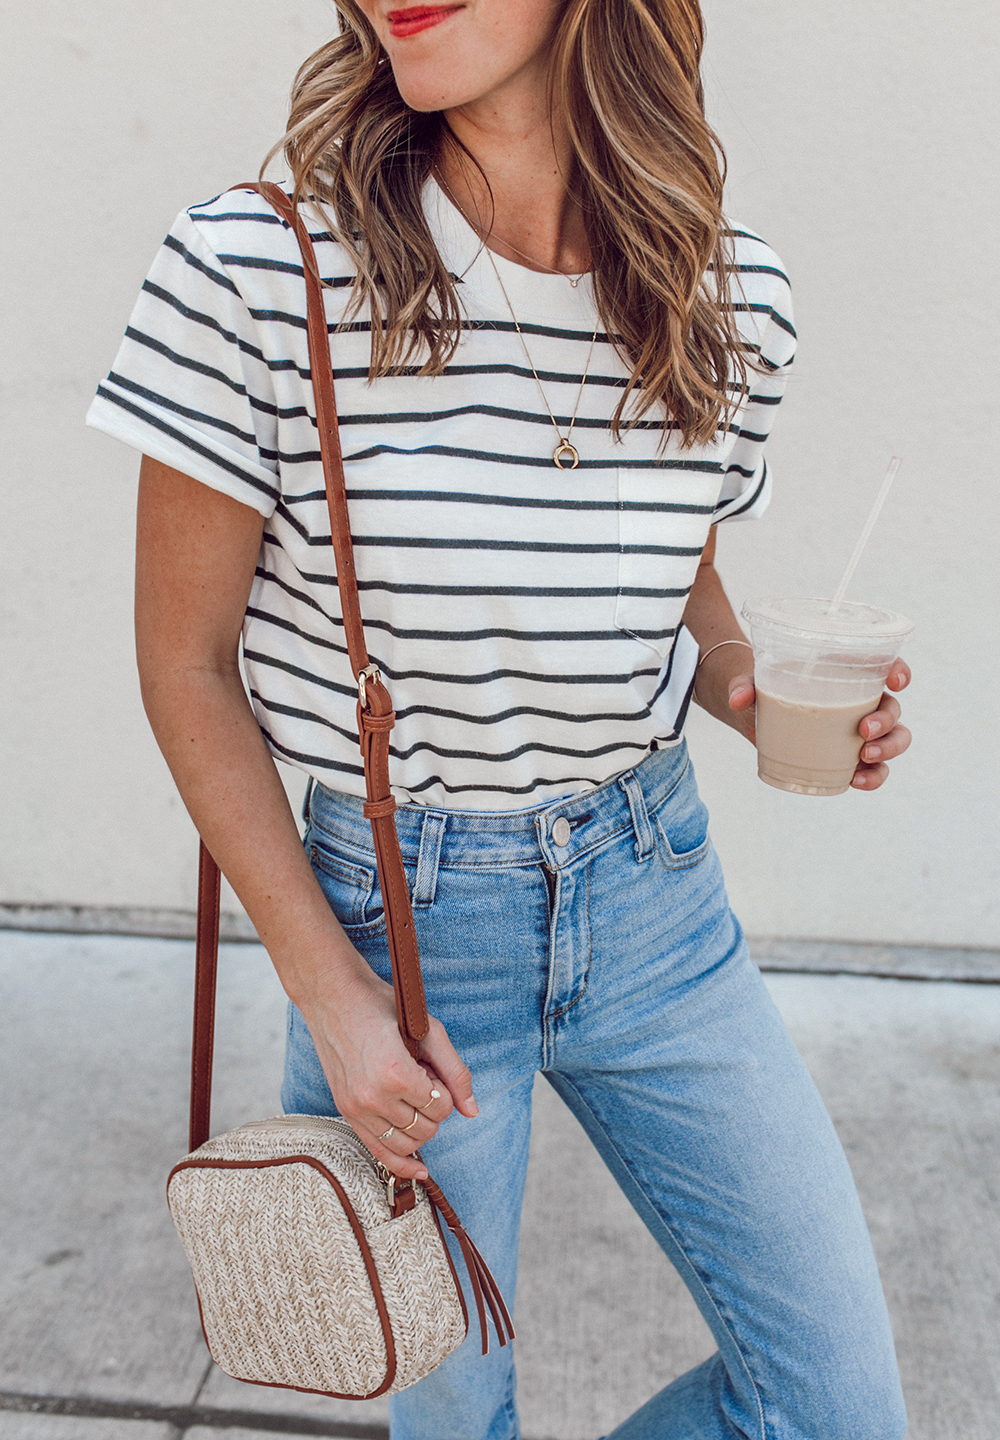 livvyland-blog-olivia-watson-sole-society-red-sandal-flats-spring-summer-outfit-idea-style-austin-texas-fashion-blogger-striped-shirt-3